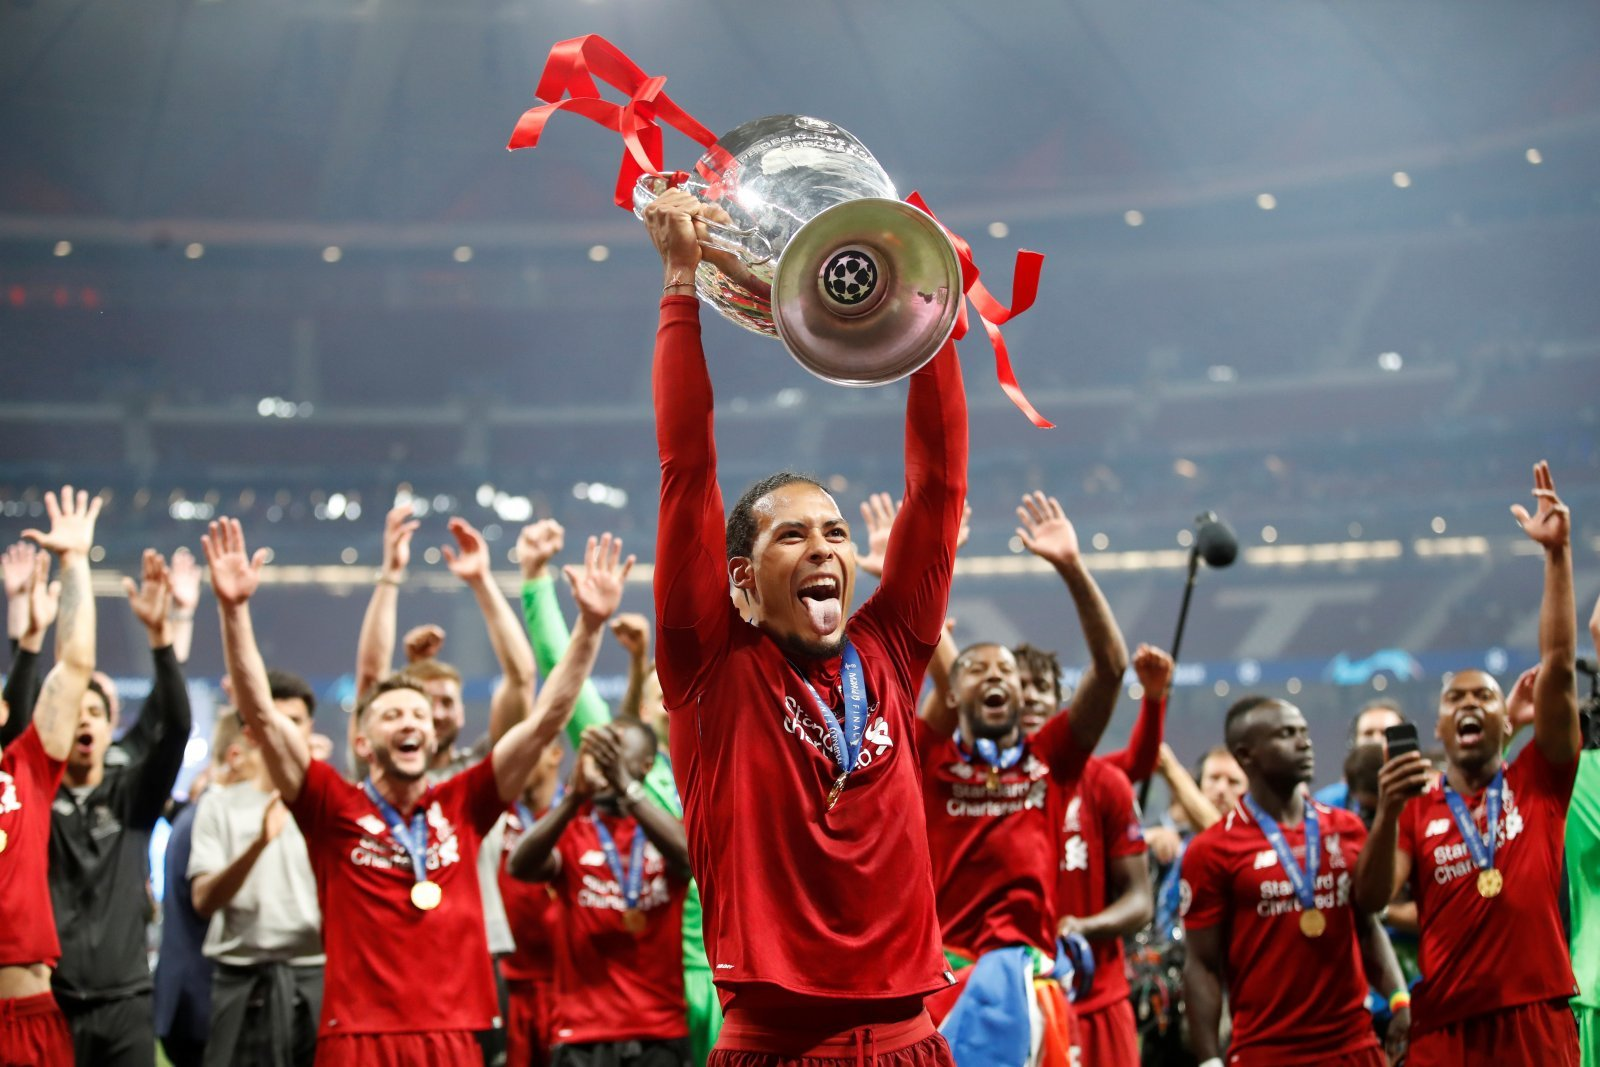 Liverpool: Fans hail Virgil van Dijk after being named UEFA Men's Player of the Year